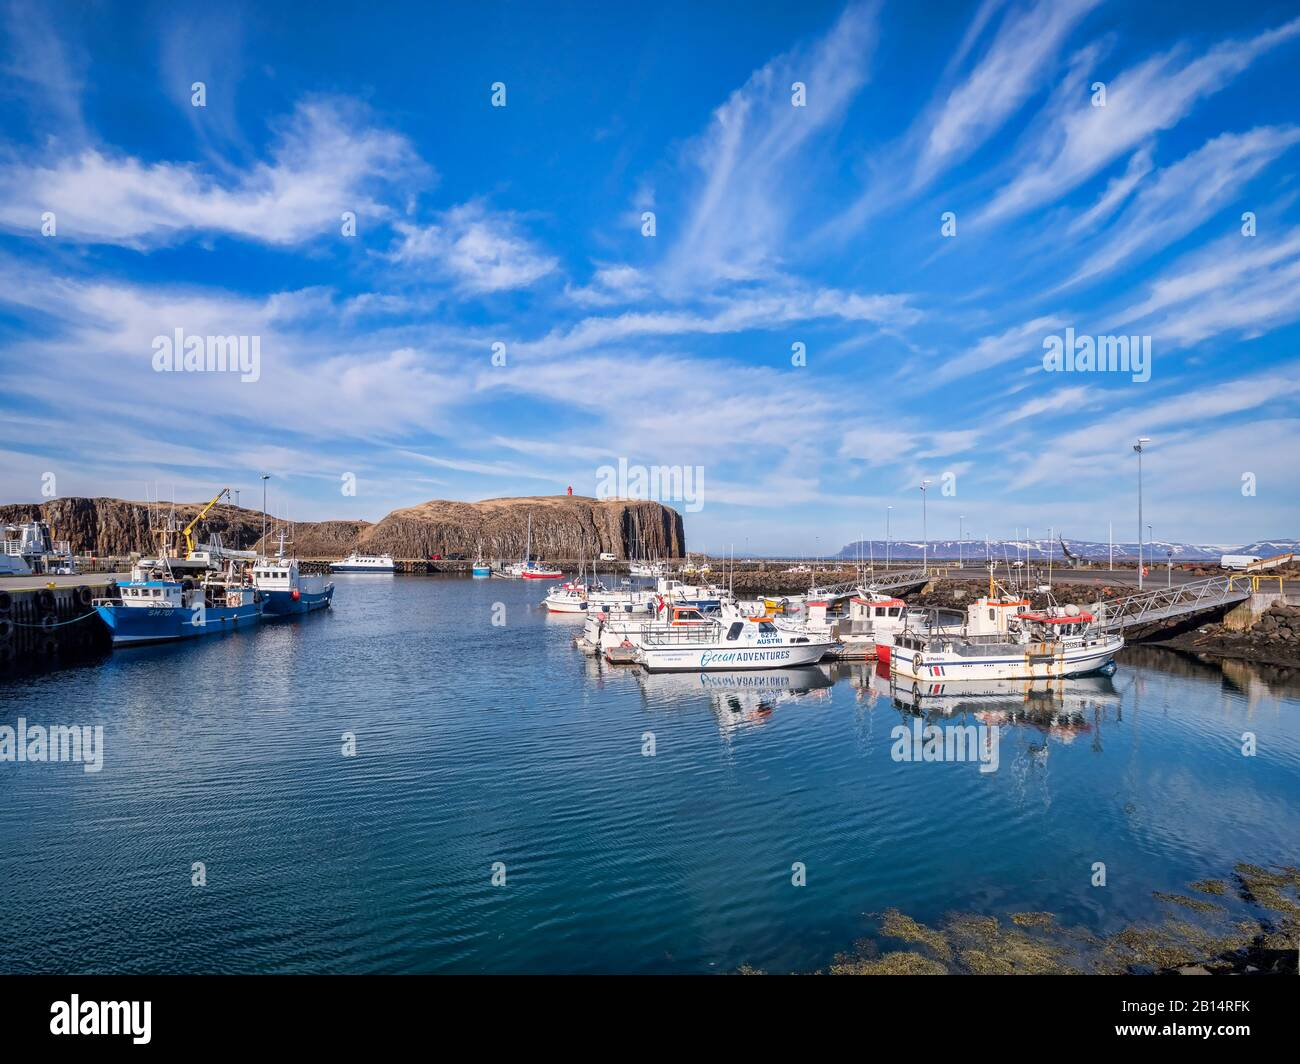 16 April 2018: Stykkisholmur, Iceland - Boats moored in the harbour at Stykkisholmur, on the Snaefellsnes Peninsula, West Iceland. Stock Photo